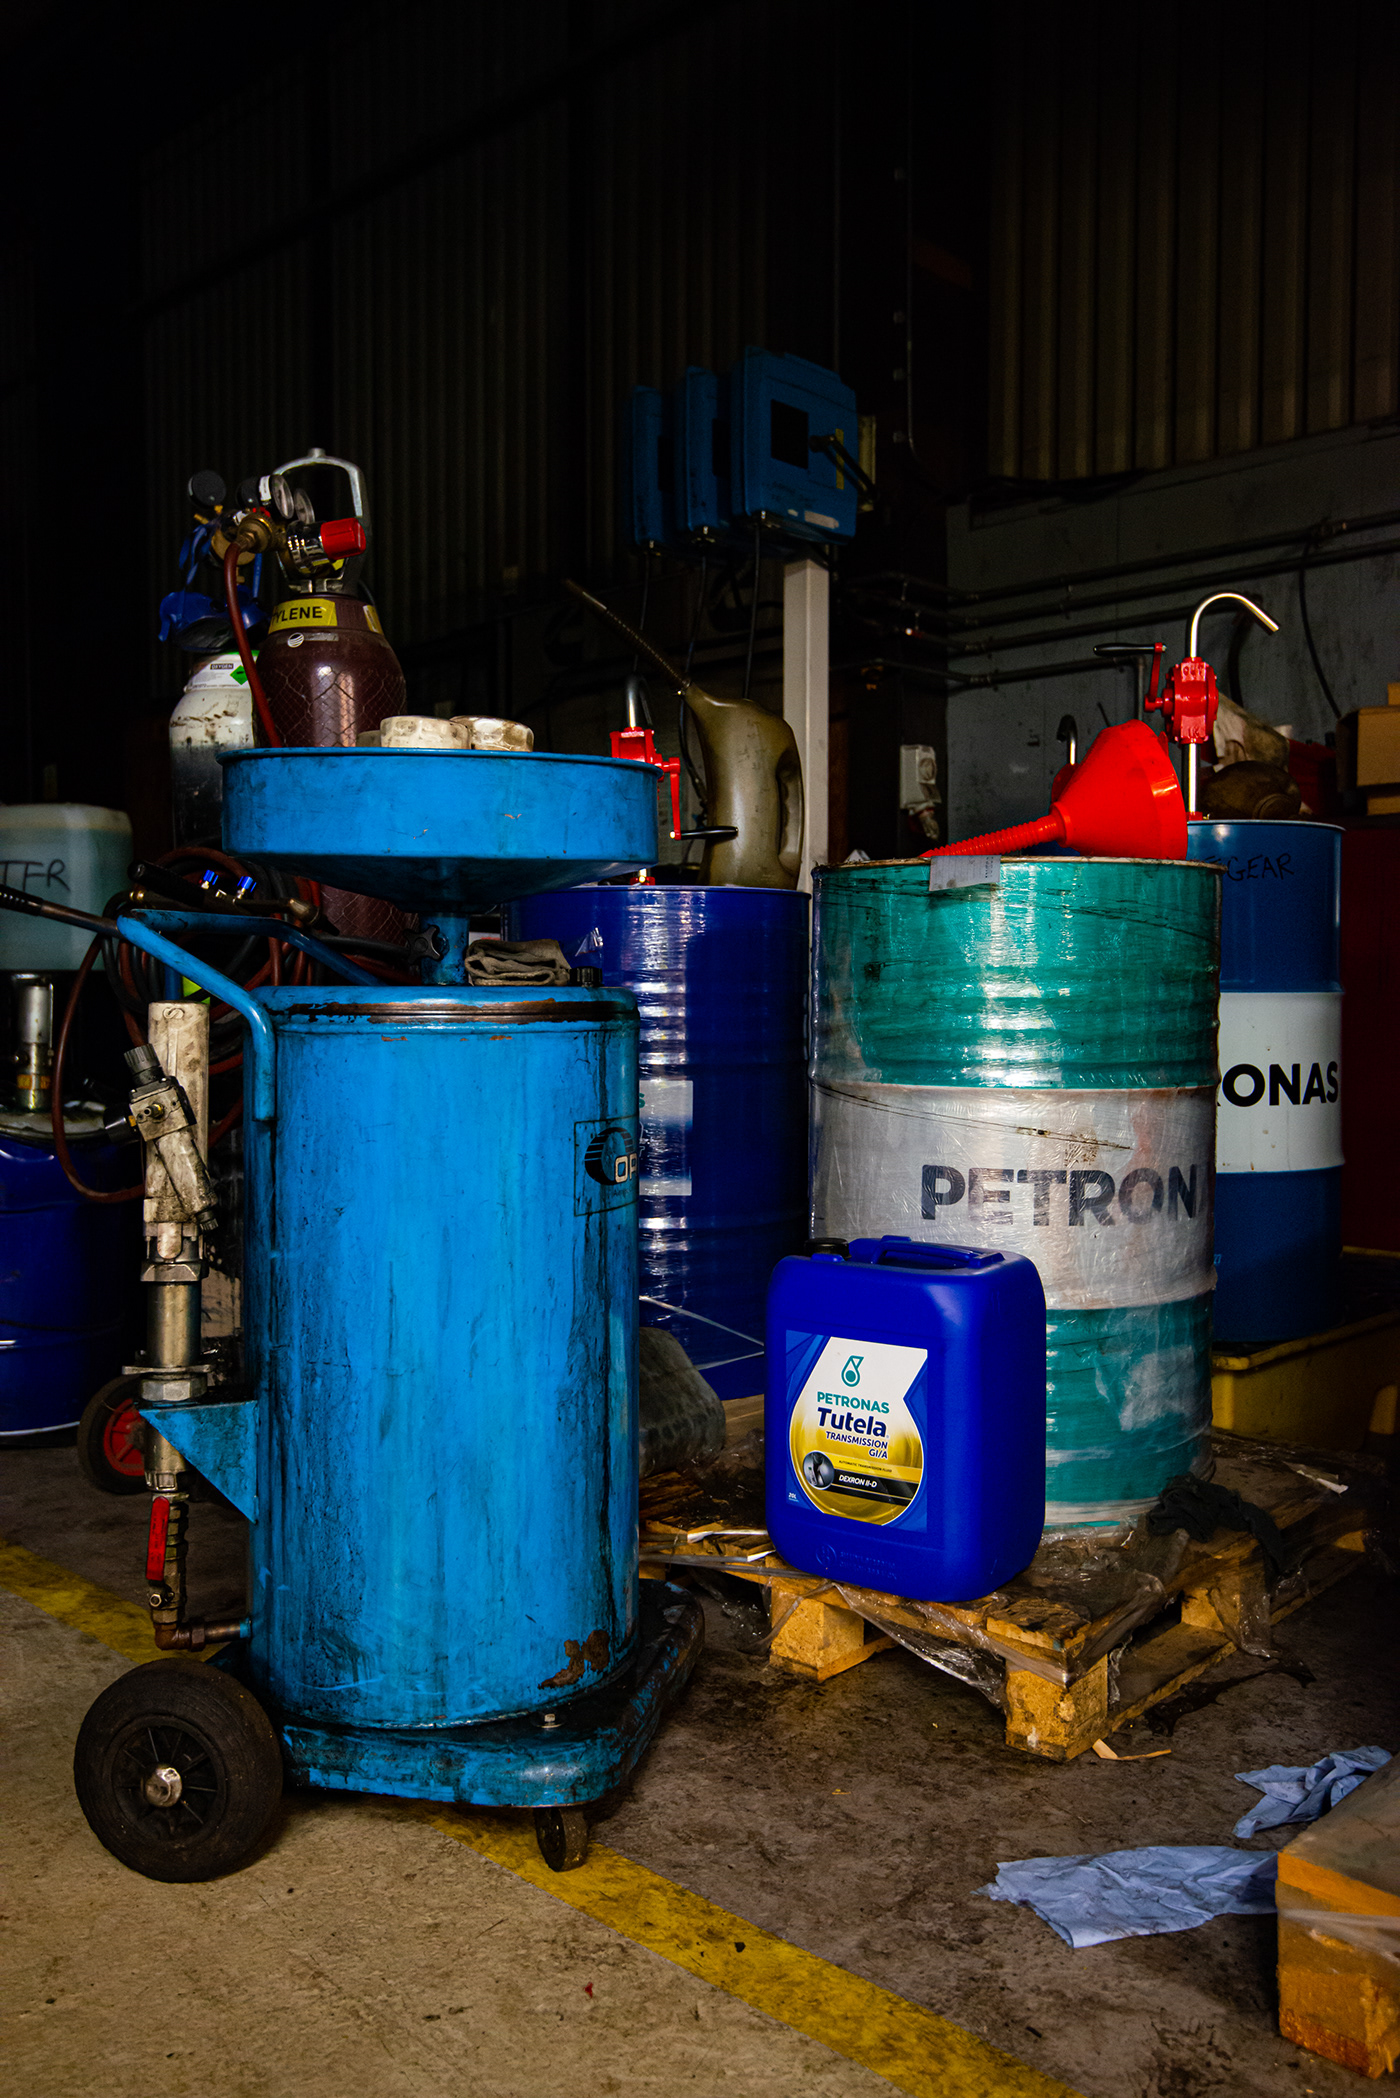 Image may contain: waste container, blue and cylinder